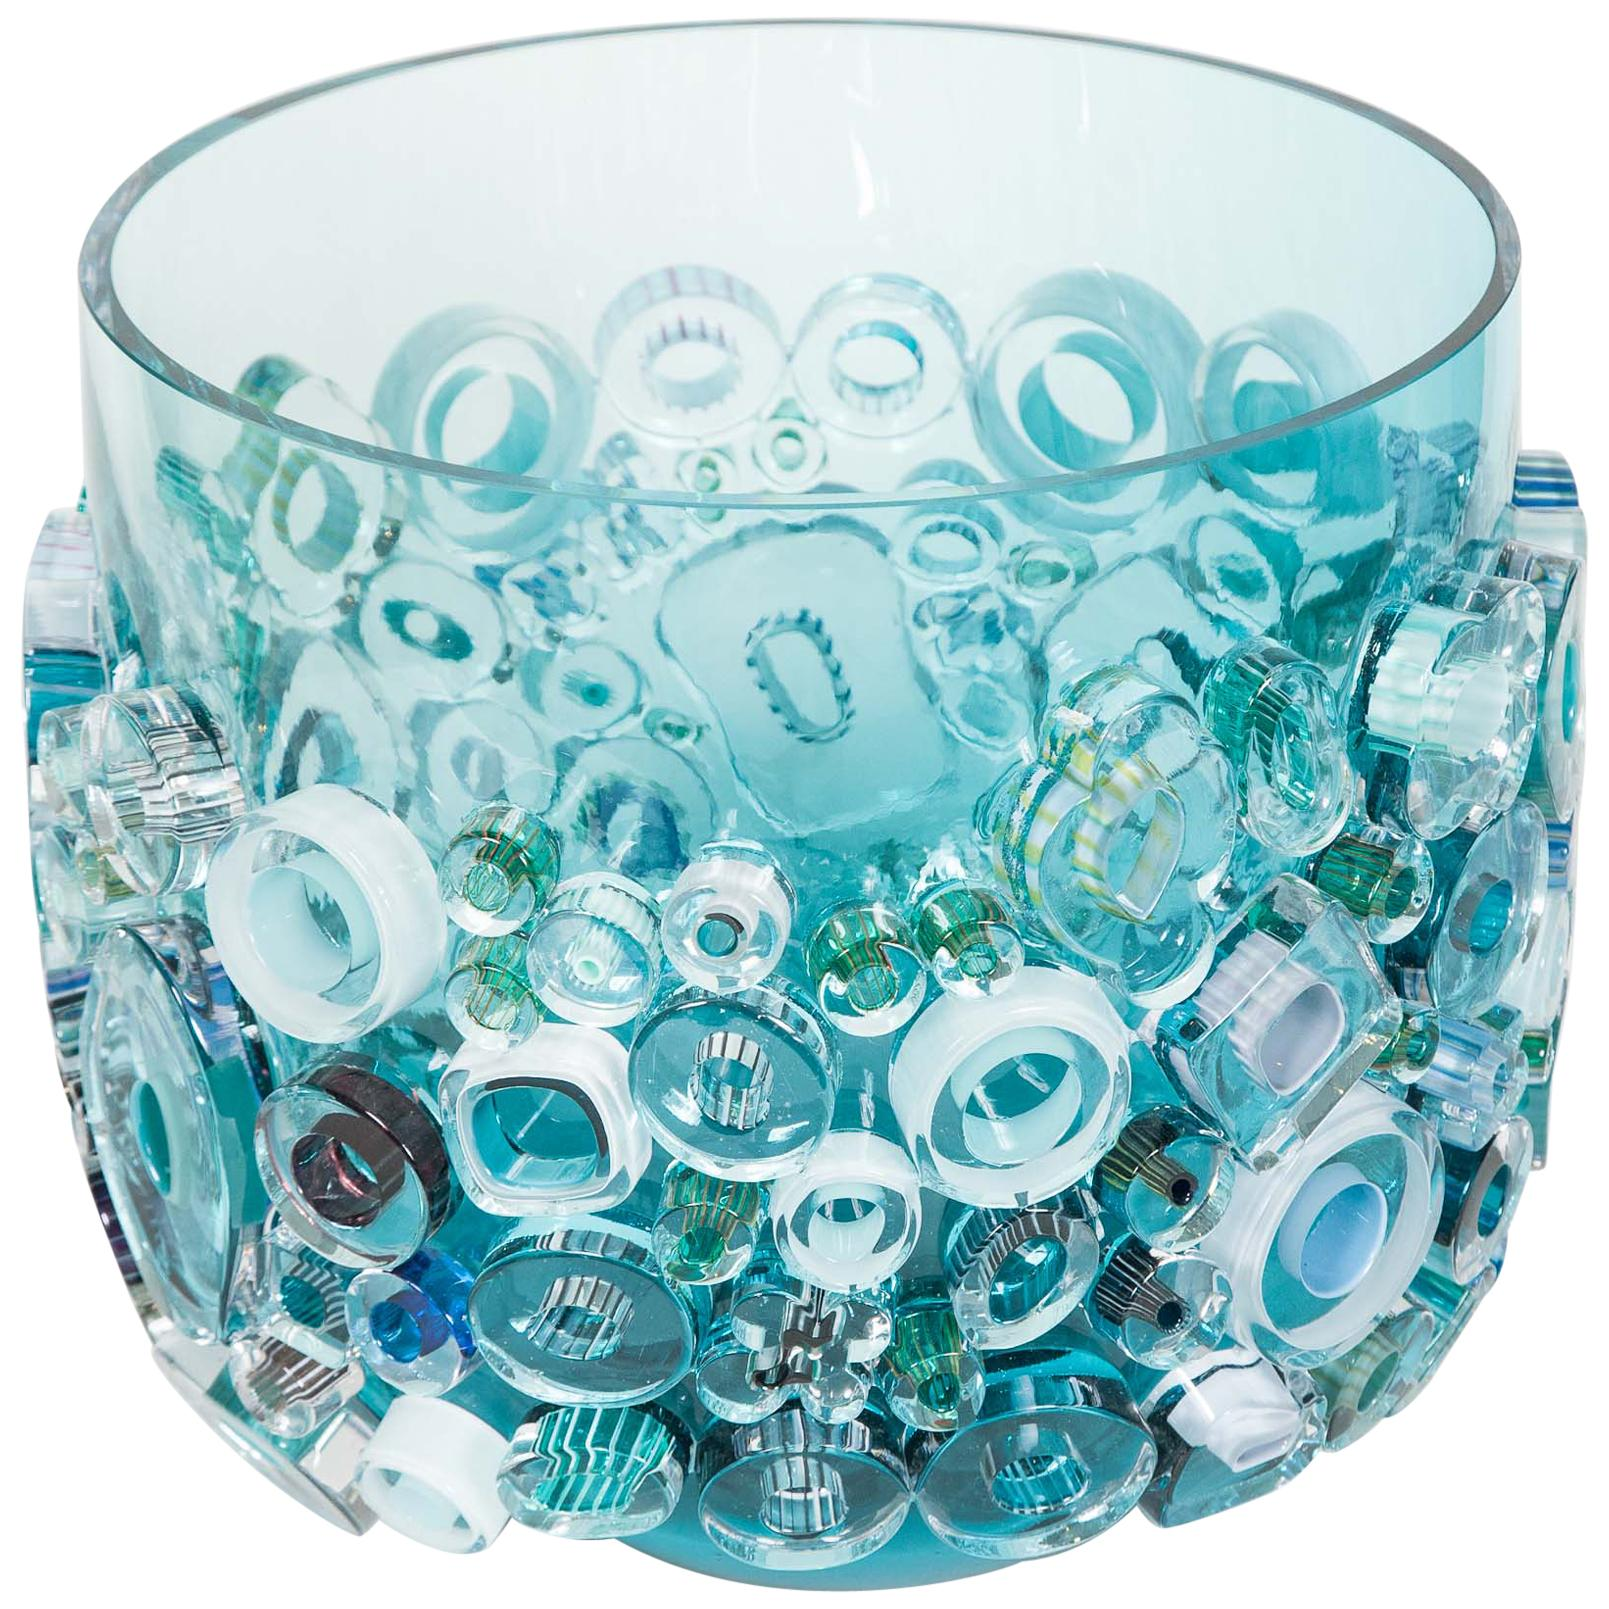 Common Ray in Aqua Light, a turquoise & blue Glass Centrepiece by Sabine Lintzen